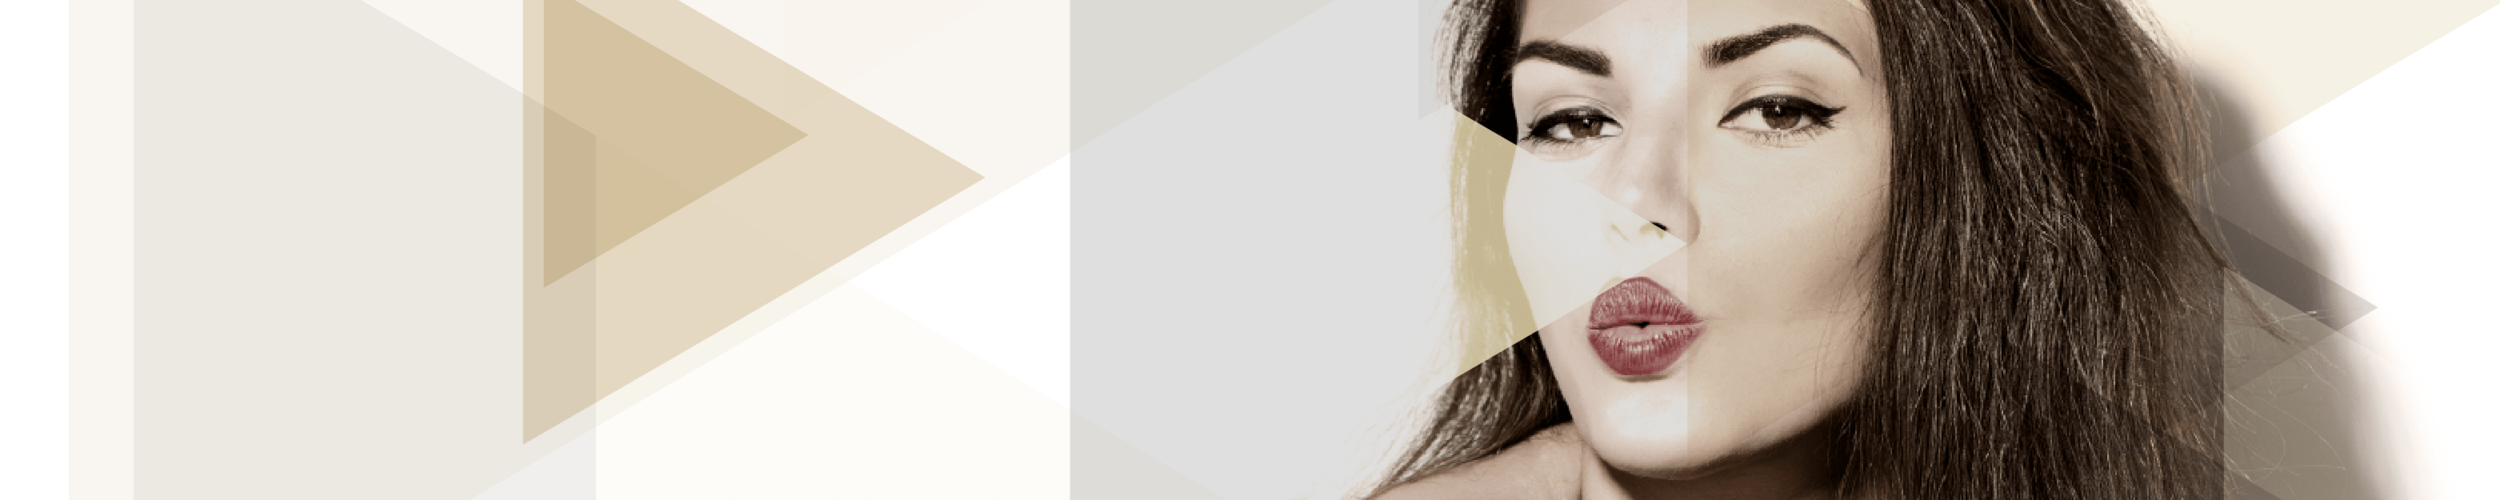 Header Banners 300-07-min.png